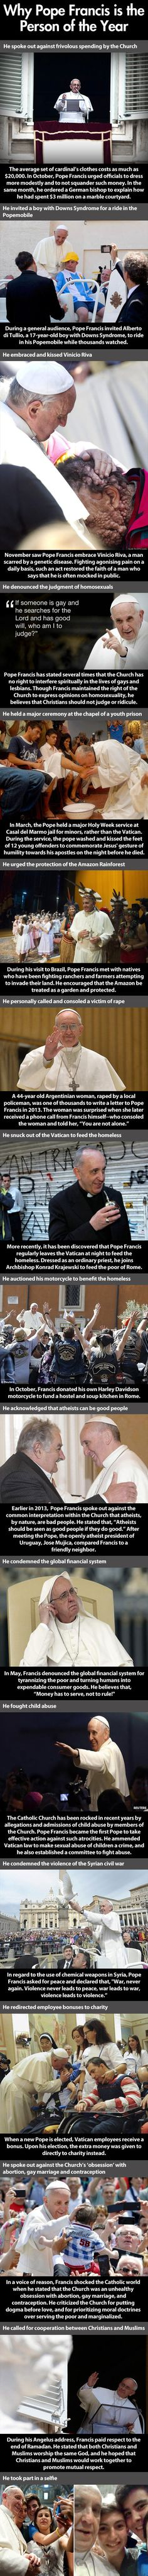 Here are some amazing reasons why Pope Francs was named person of the year by TIME magazine. He's such an inspiring man.